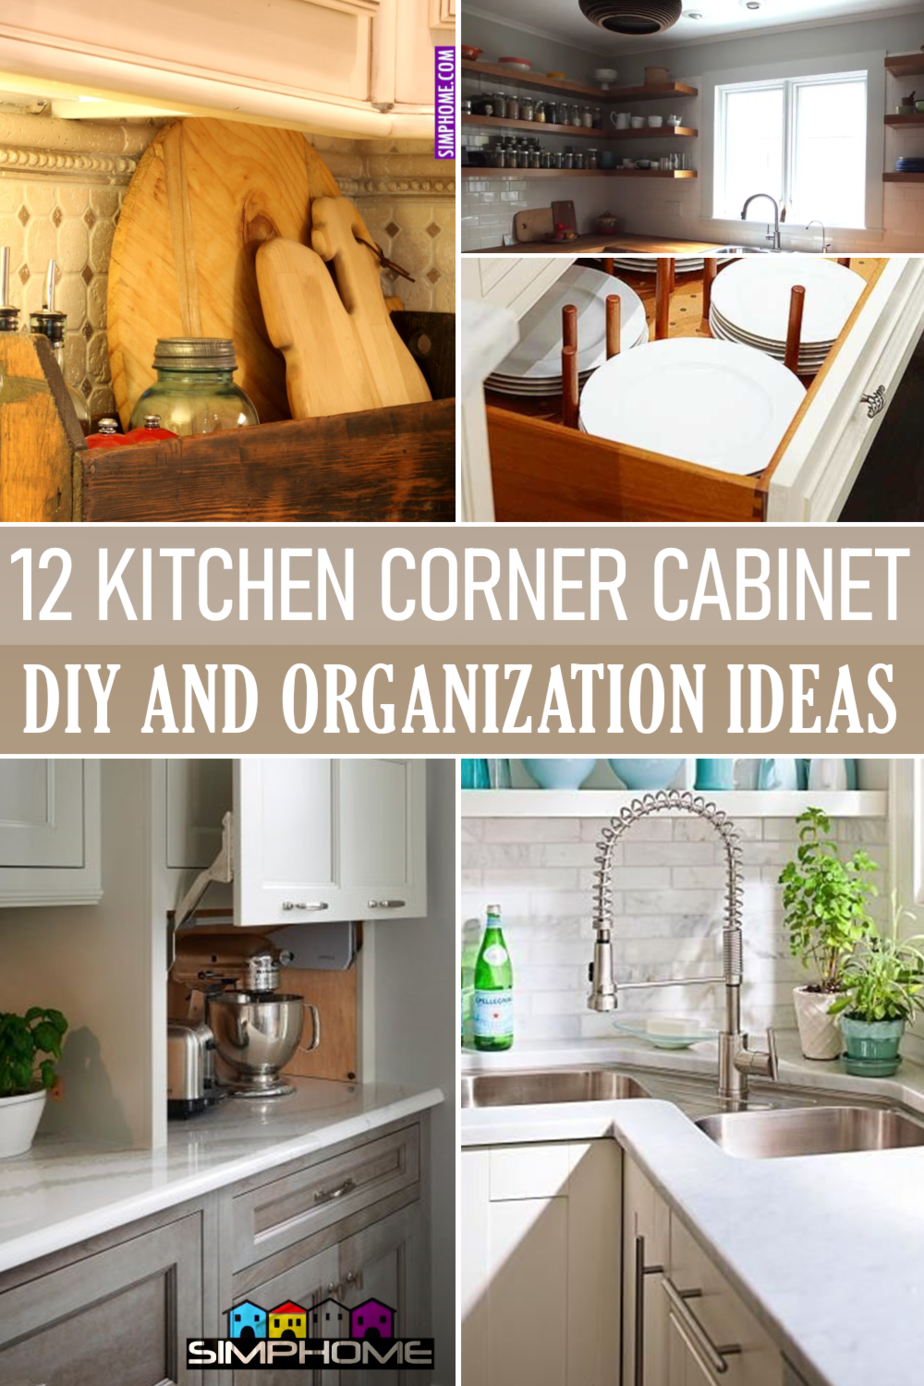 12 Kitchen Corner Cabinet and Organization via Simphome.comFeatured Image